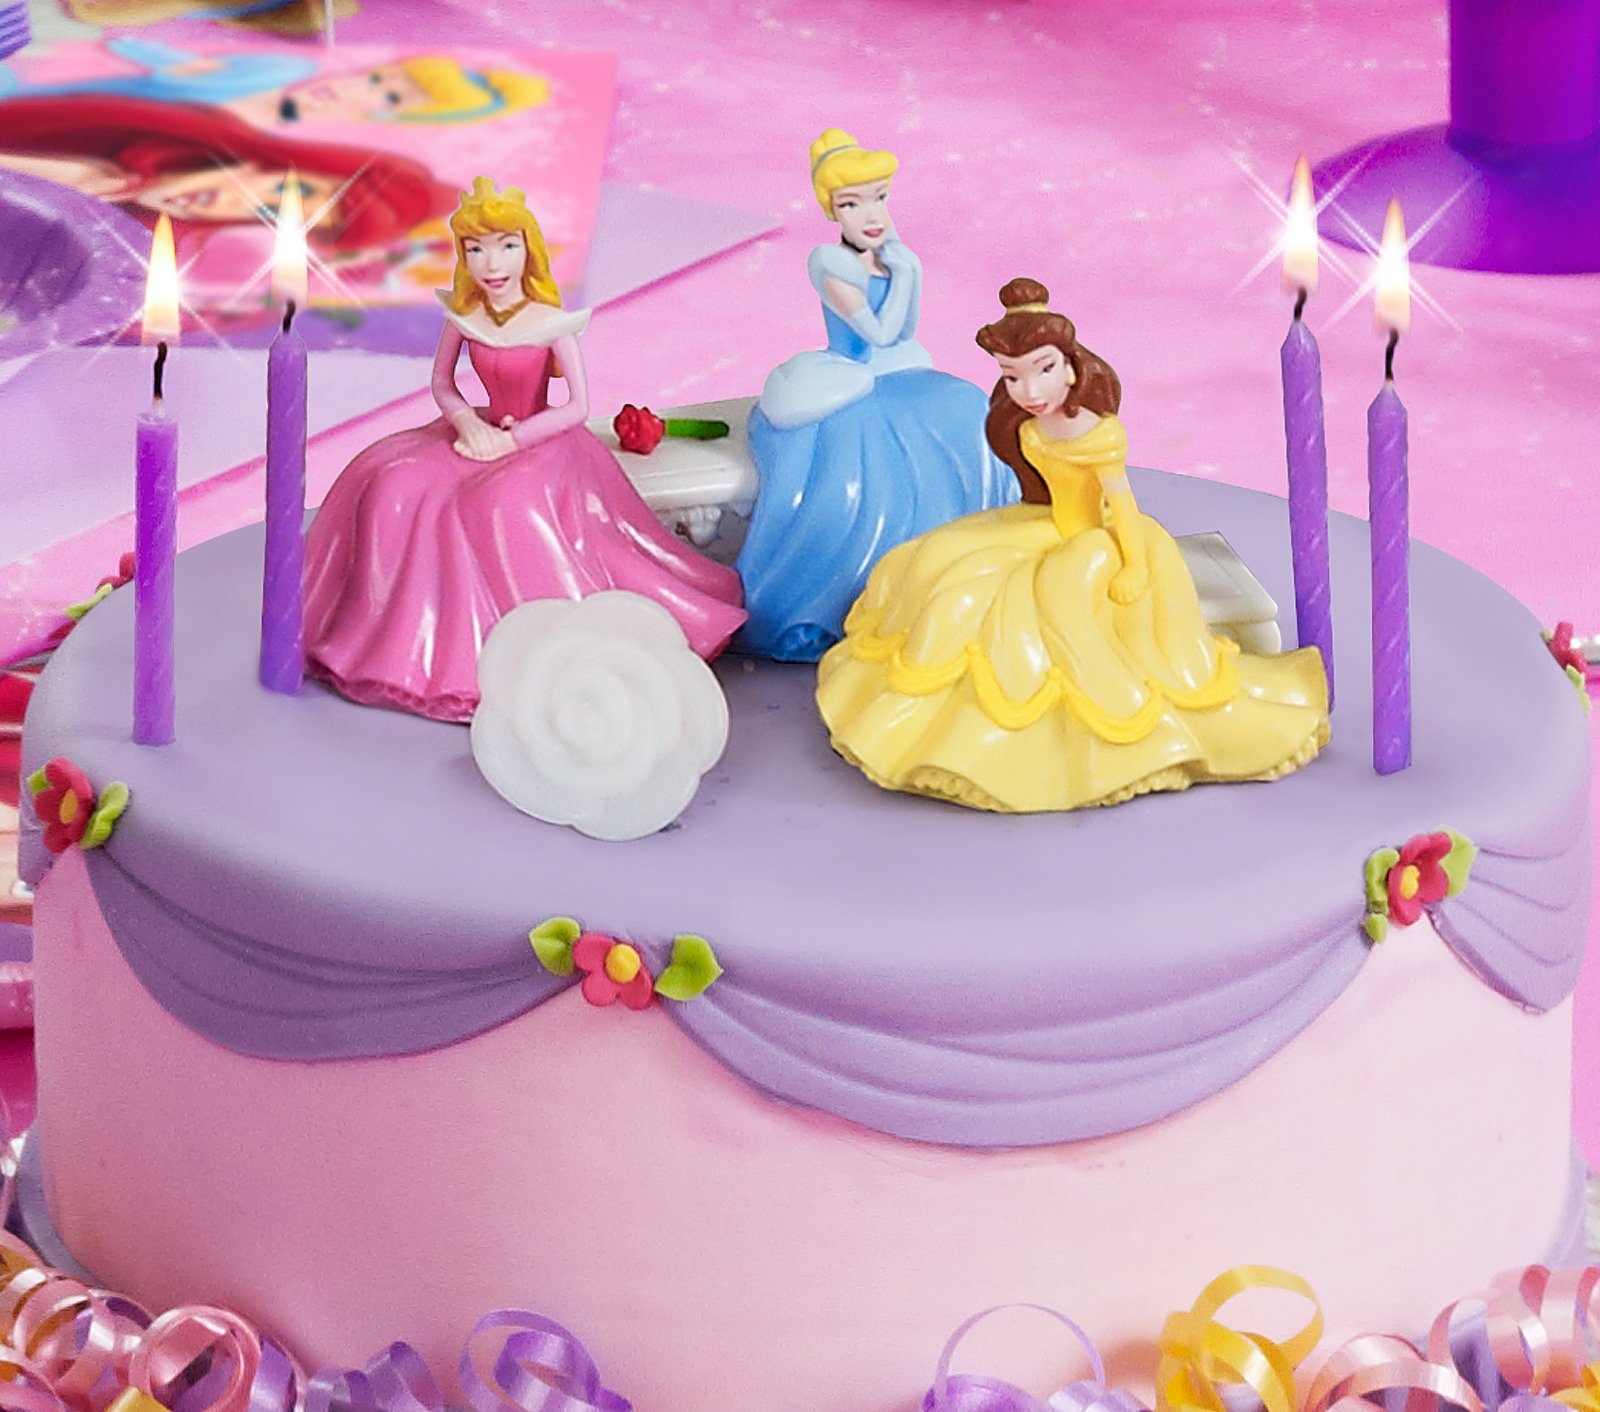 Disney Princess Light-Up Cake Toppers